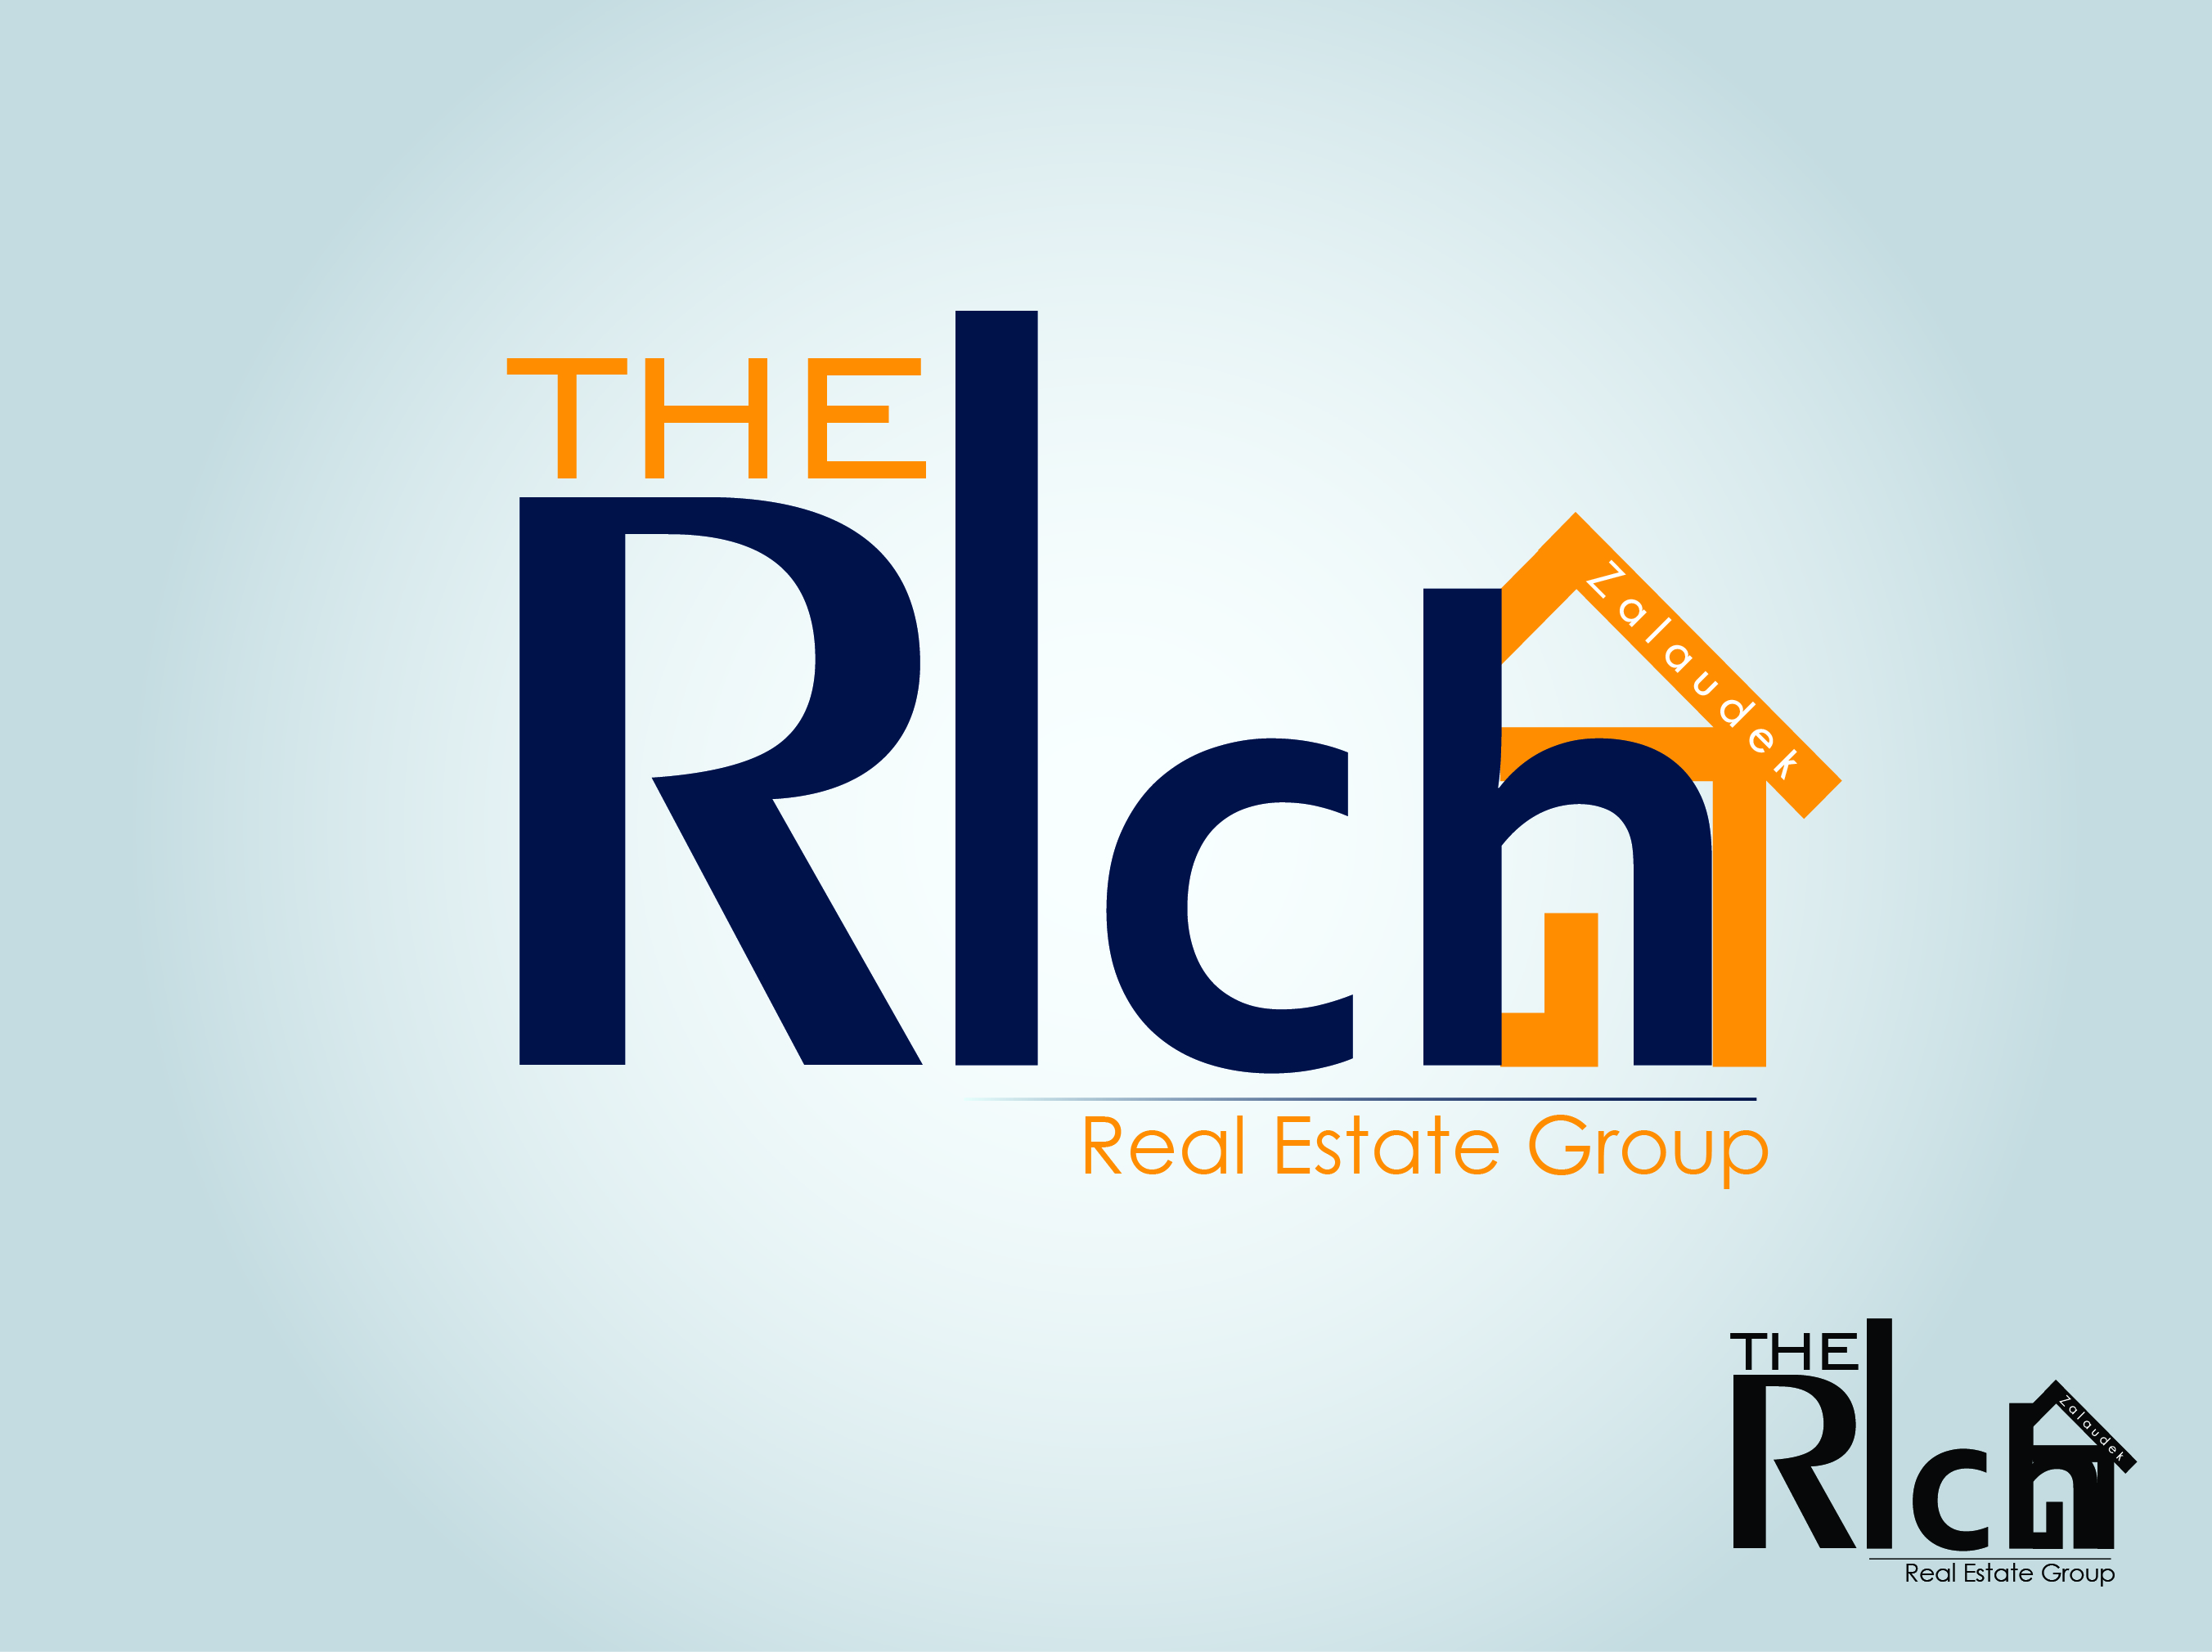 Logo Design by nTia - Entry No. 11 in the Logo Design Contest The Rich Z. Real Estate Group Logo Design.